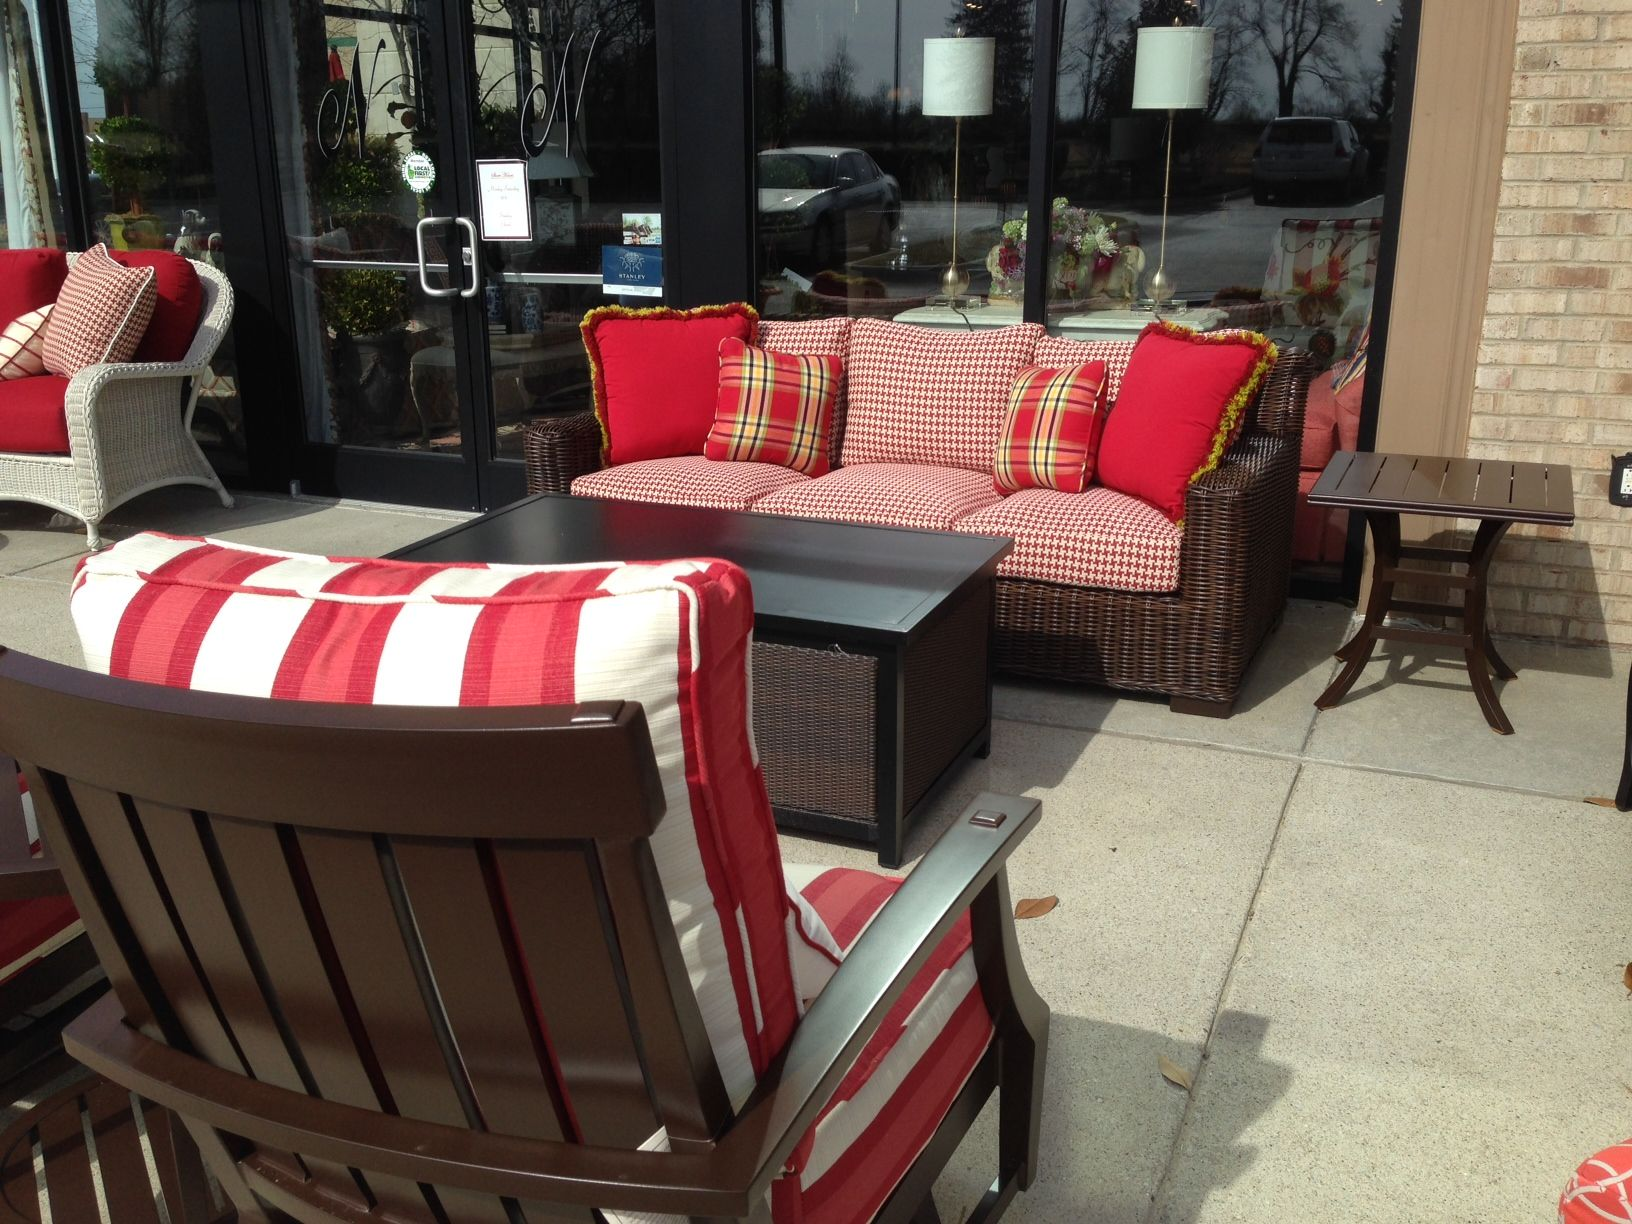 The Rustic Wicker sofa in red/white houndstooth...love it!!